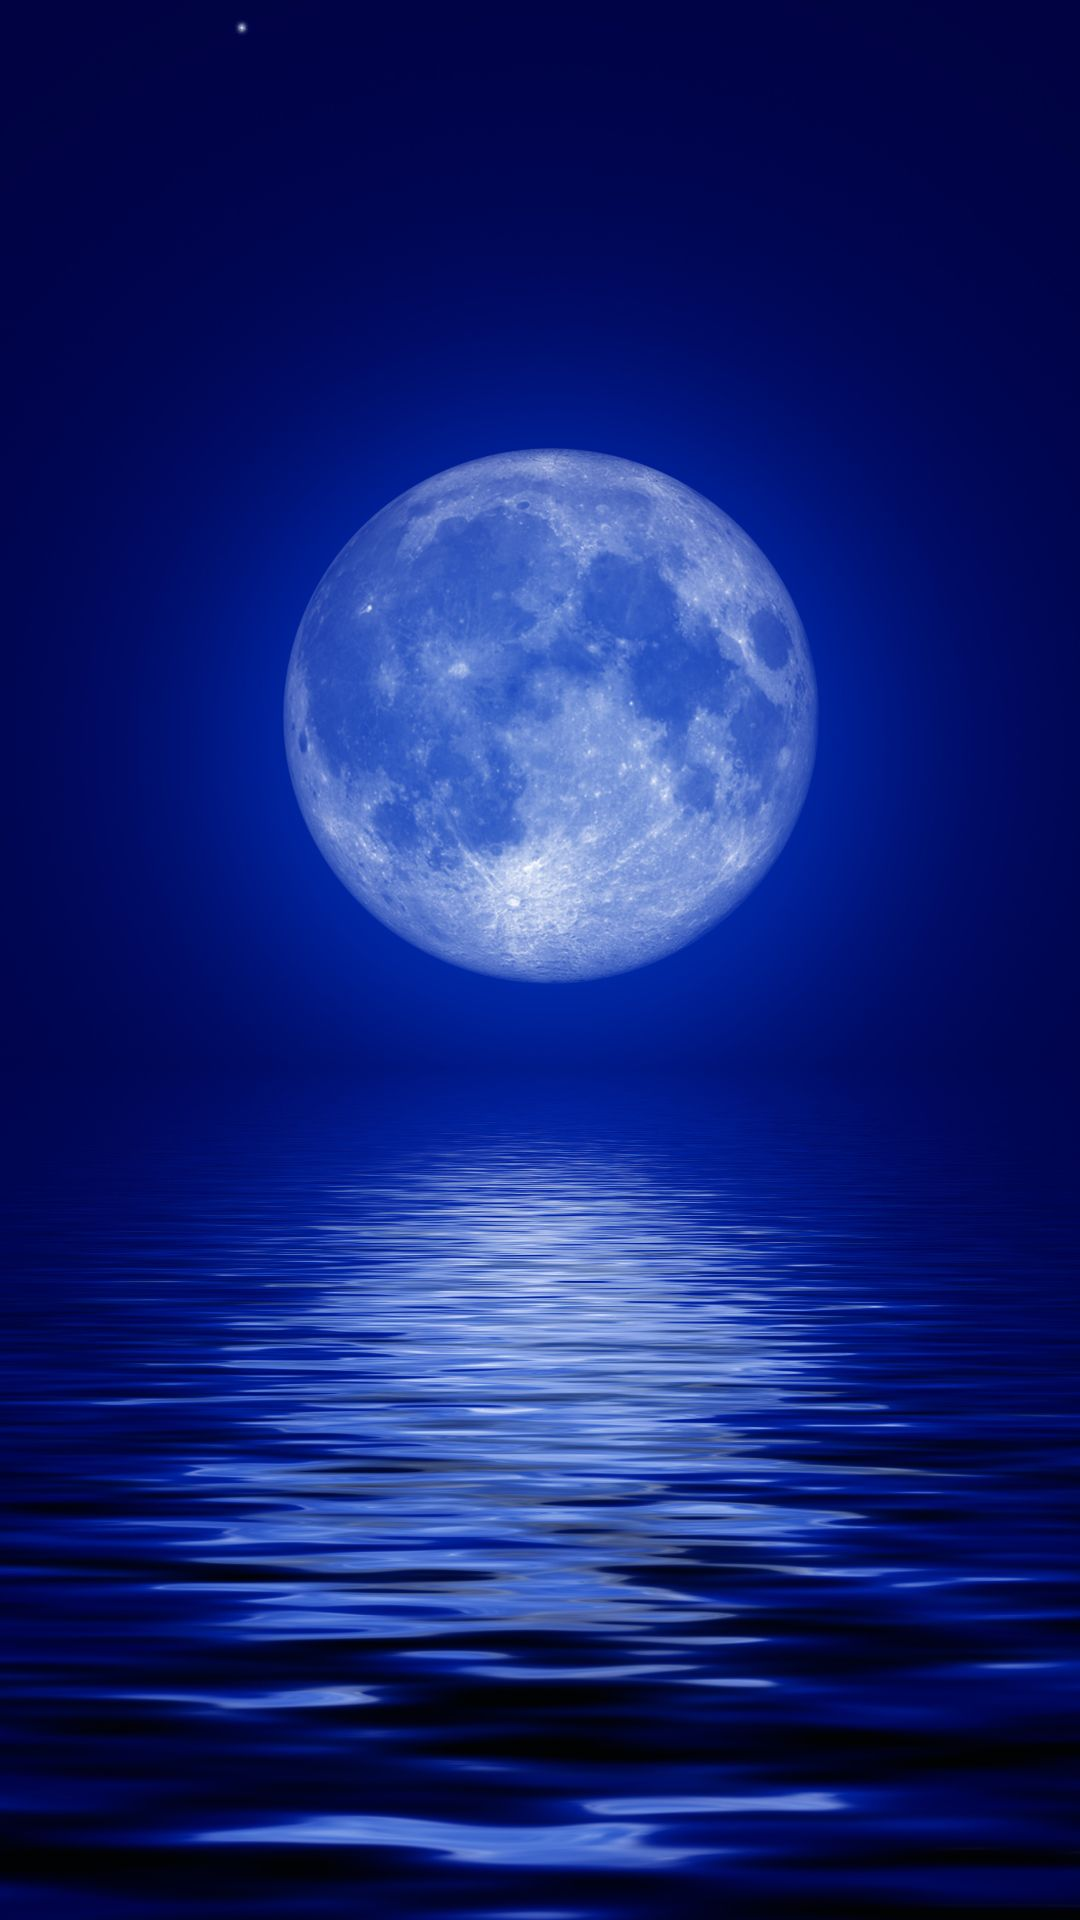 Full Moon Wallpaper For Mobile With images Pink moon wallpaper 1080x1920